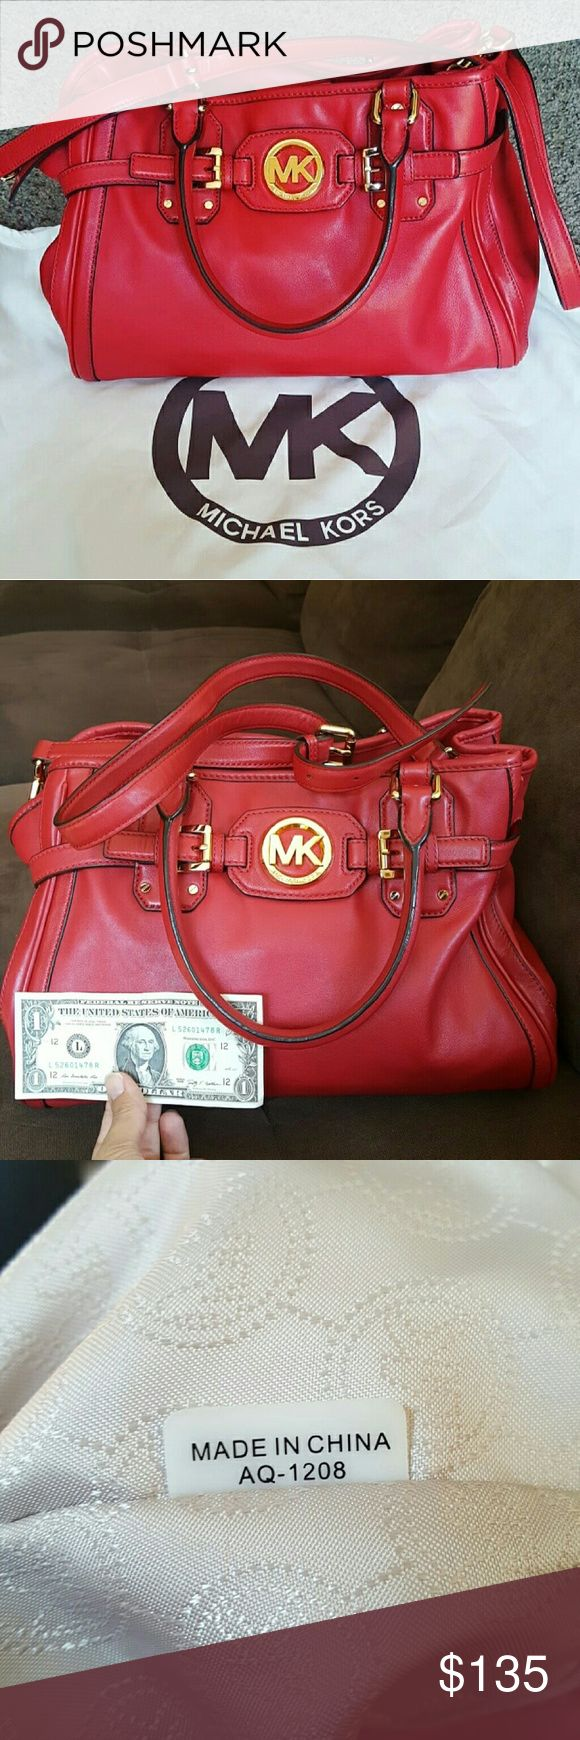 $3.99 Shipping. Authentic Michael Kors Bag Barely used. Excelent Condition. Michael Kors Bags